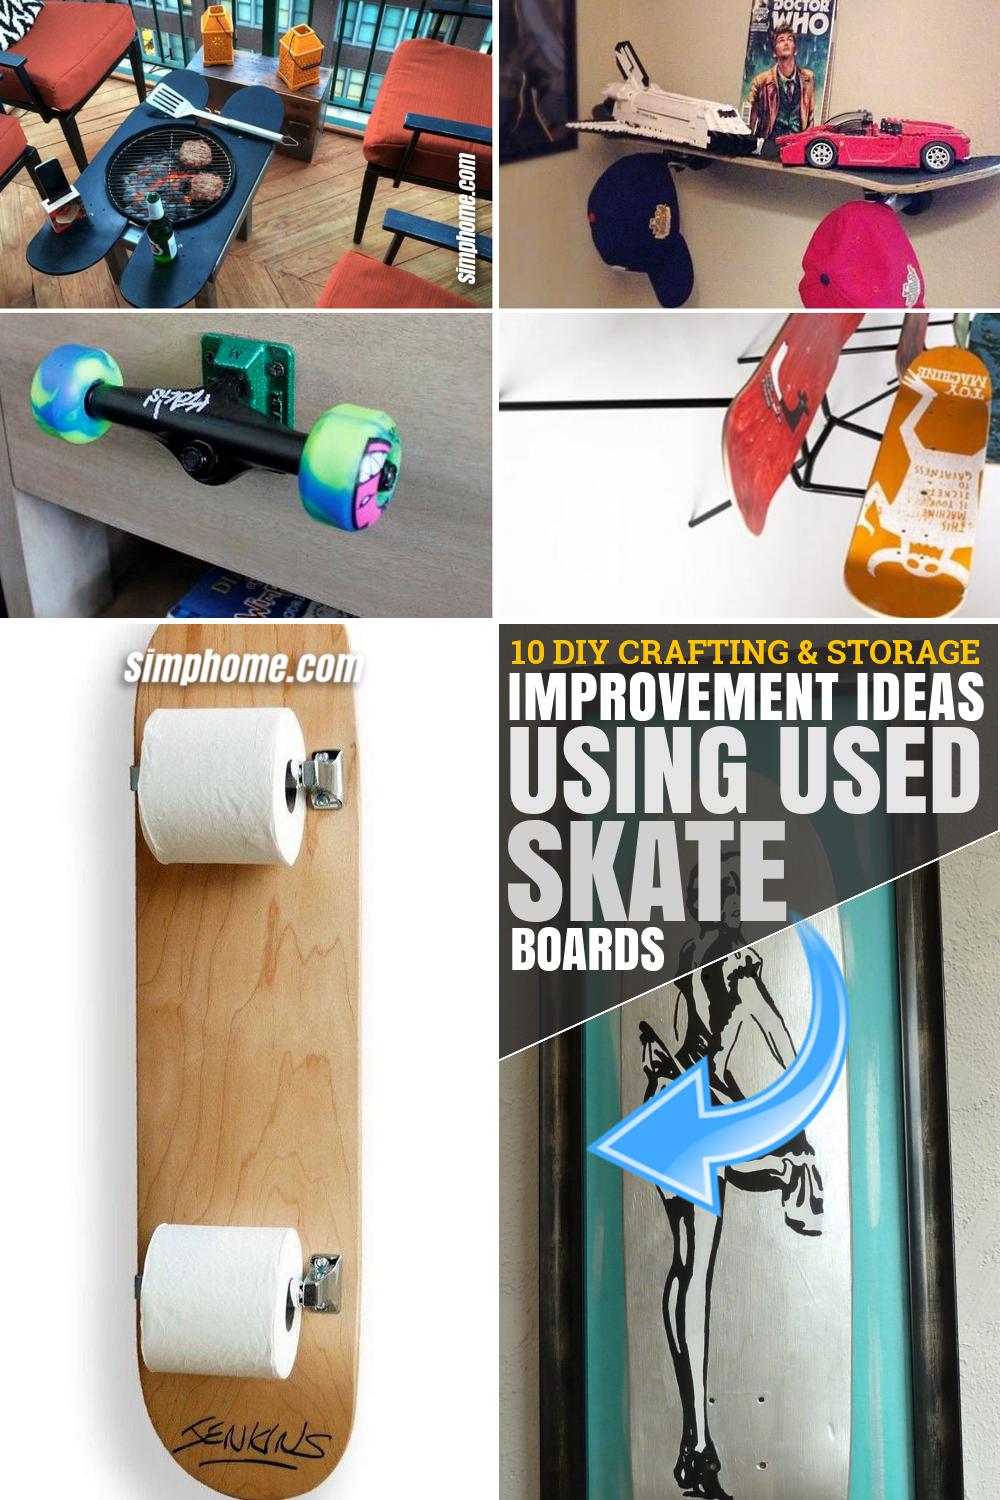 SIMPHOME.COM 10 DIY Crafting and Storage Improvement Ideas Using Used Skateboards Pinterest Featured Image